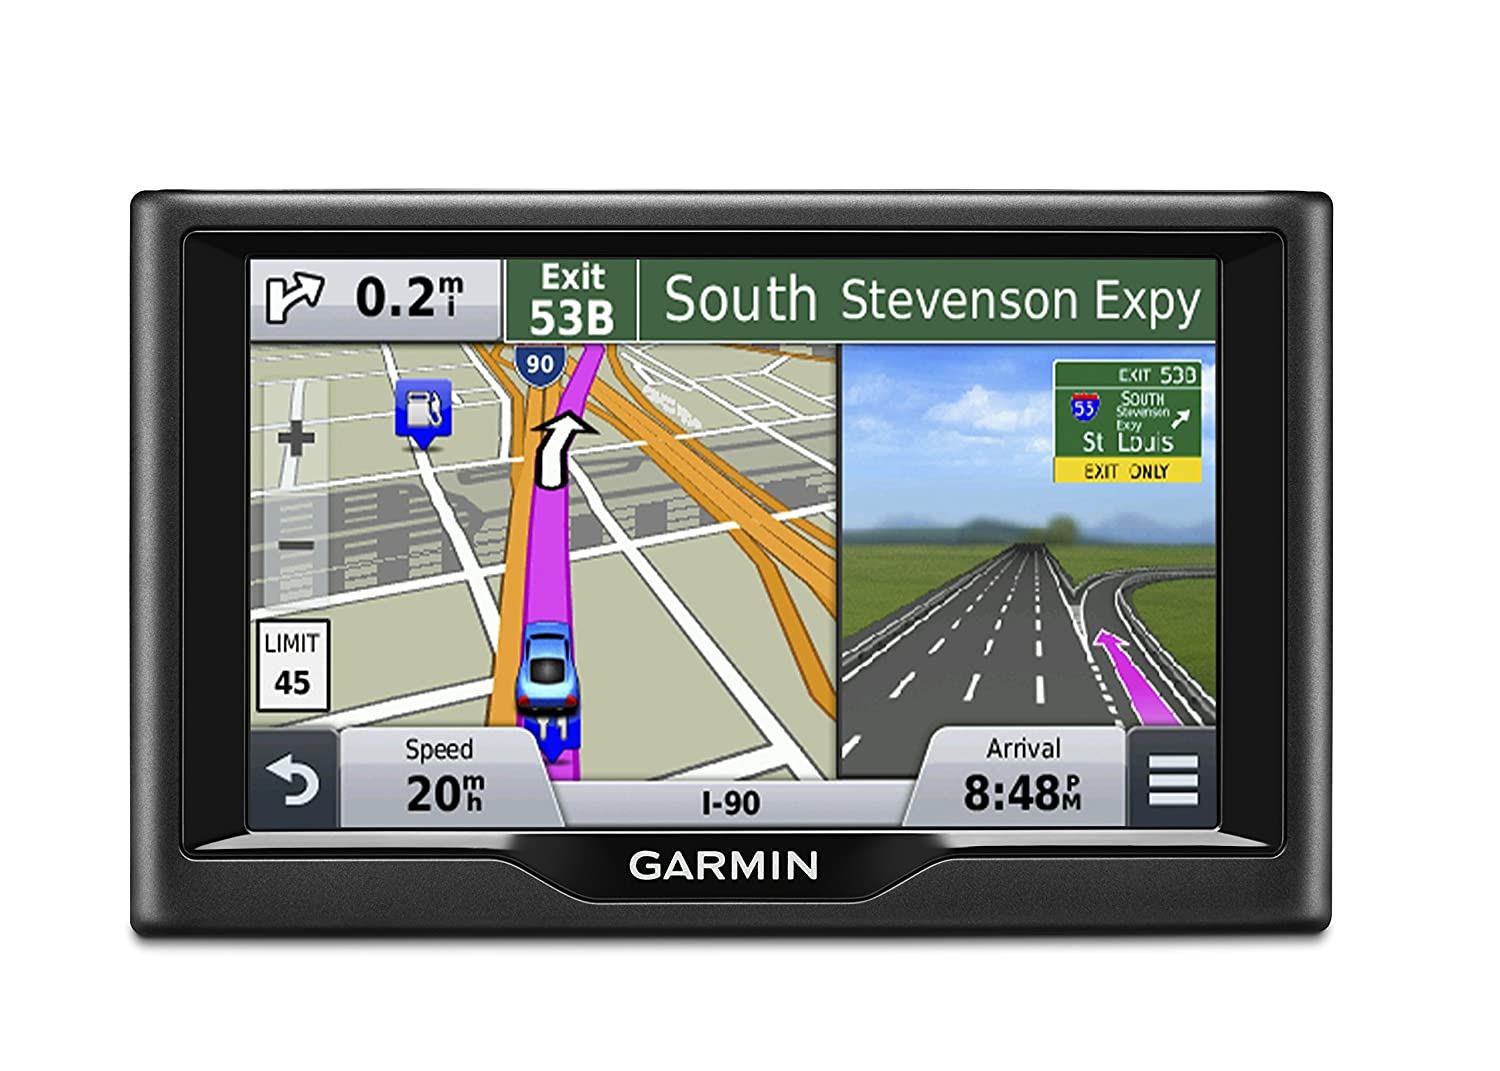 Garmin Nuvi Update >> Garmin Nuvi 57lm Gps Navigator System With Spoken Turn By Turn Directions 5 Inch Display Lifetime Map Updates Direct Access And Speed Limit